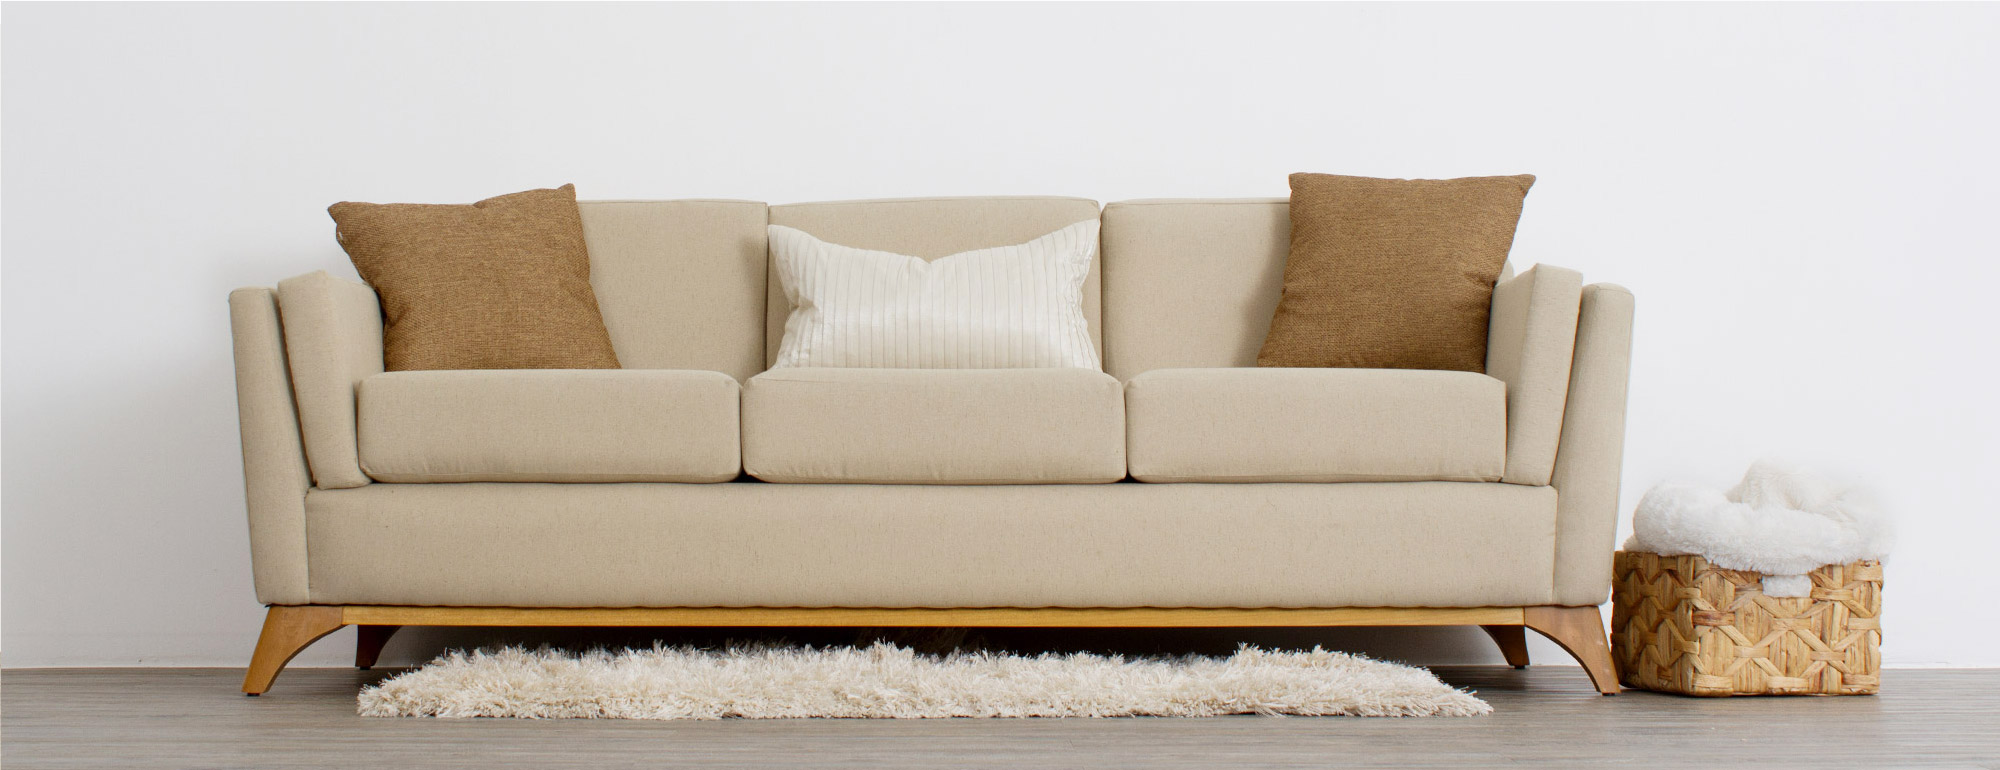 hero-woodson-sofa-6